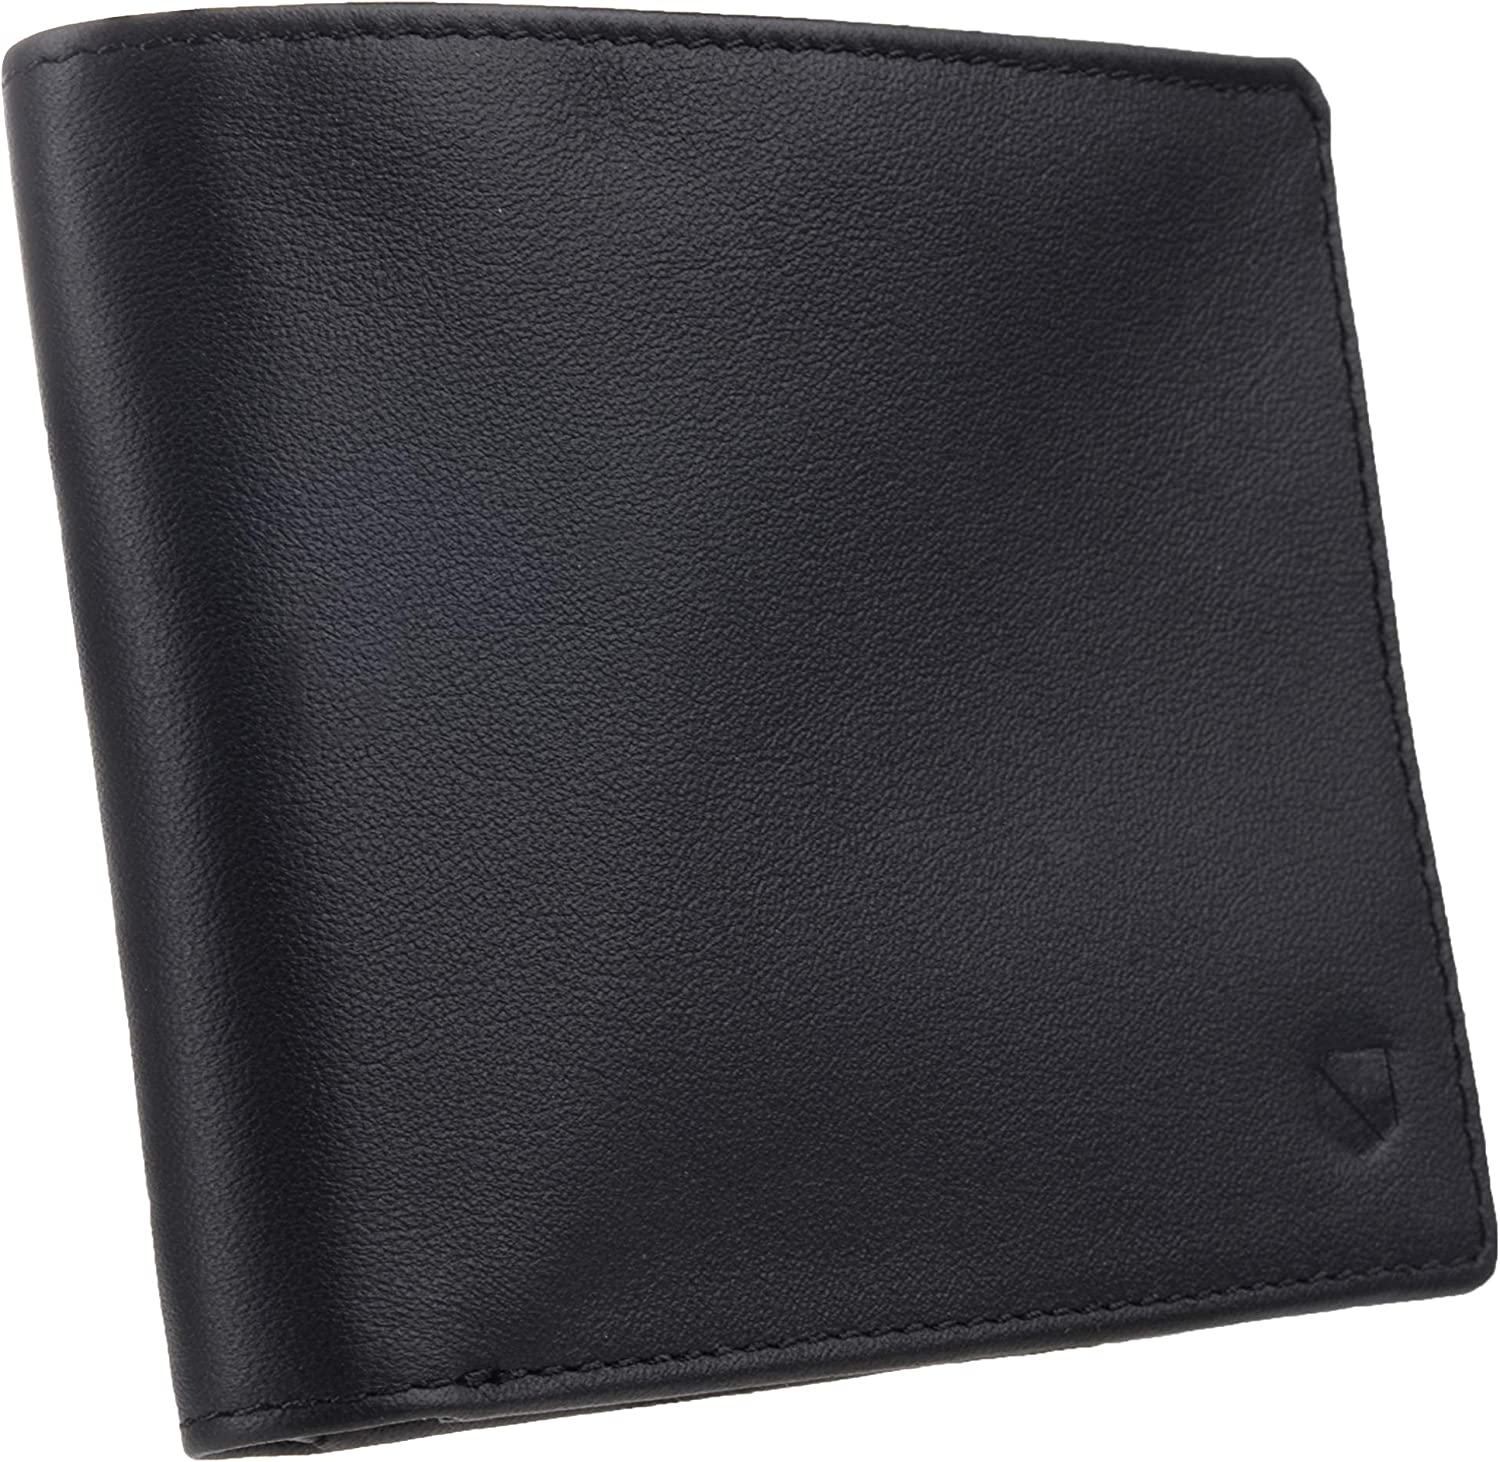 Silent Pocket Black Leather RFID Blocking Jet Black Bi-Fold Wallet - Prevents Hacking and Identity Theft, Protects Credit Cards, Secure Your Information, Instant Protection, Great for Travel